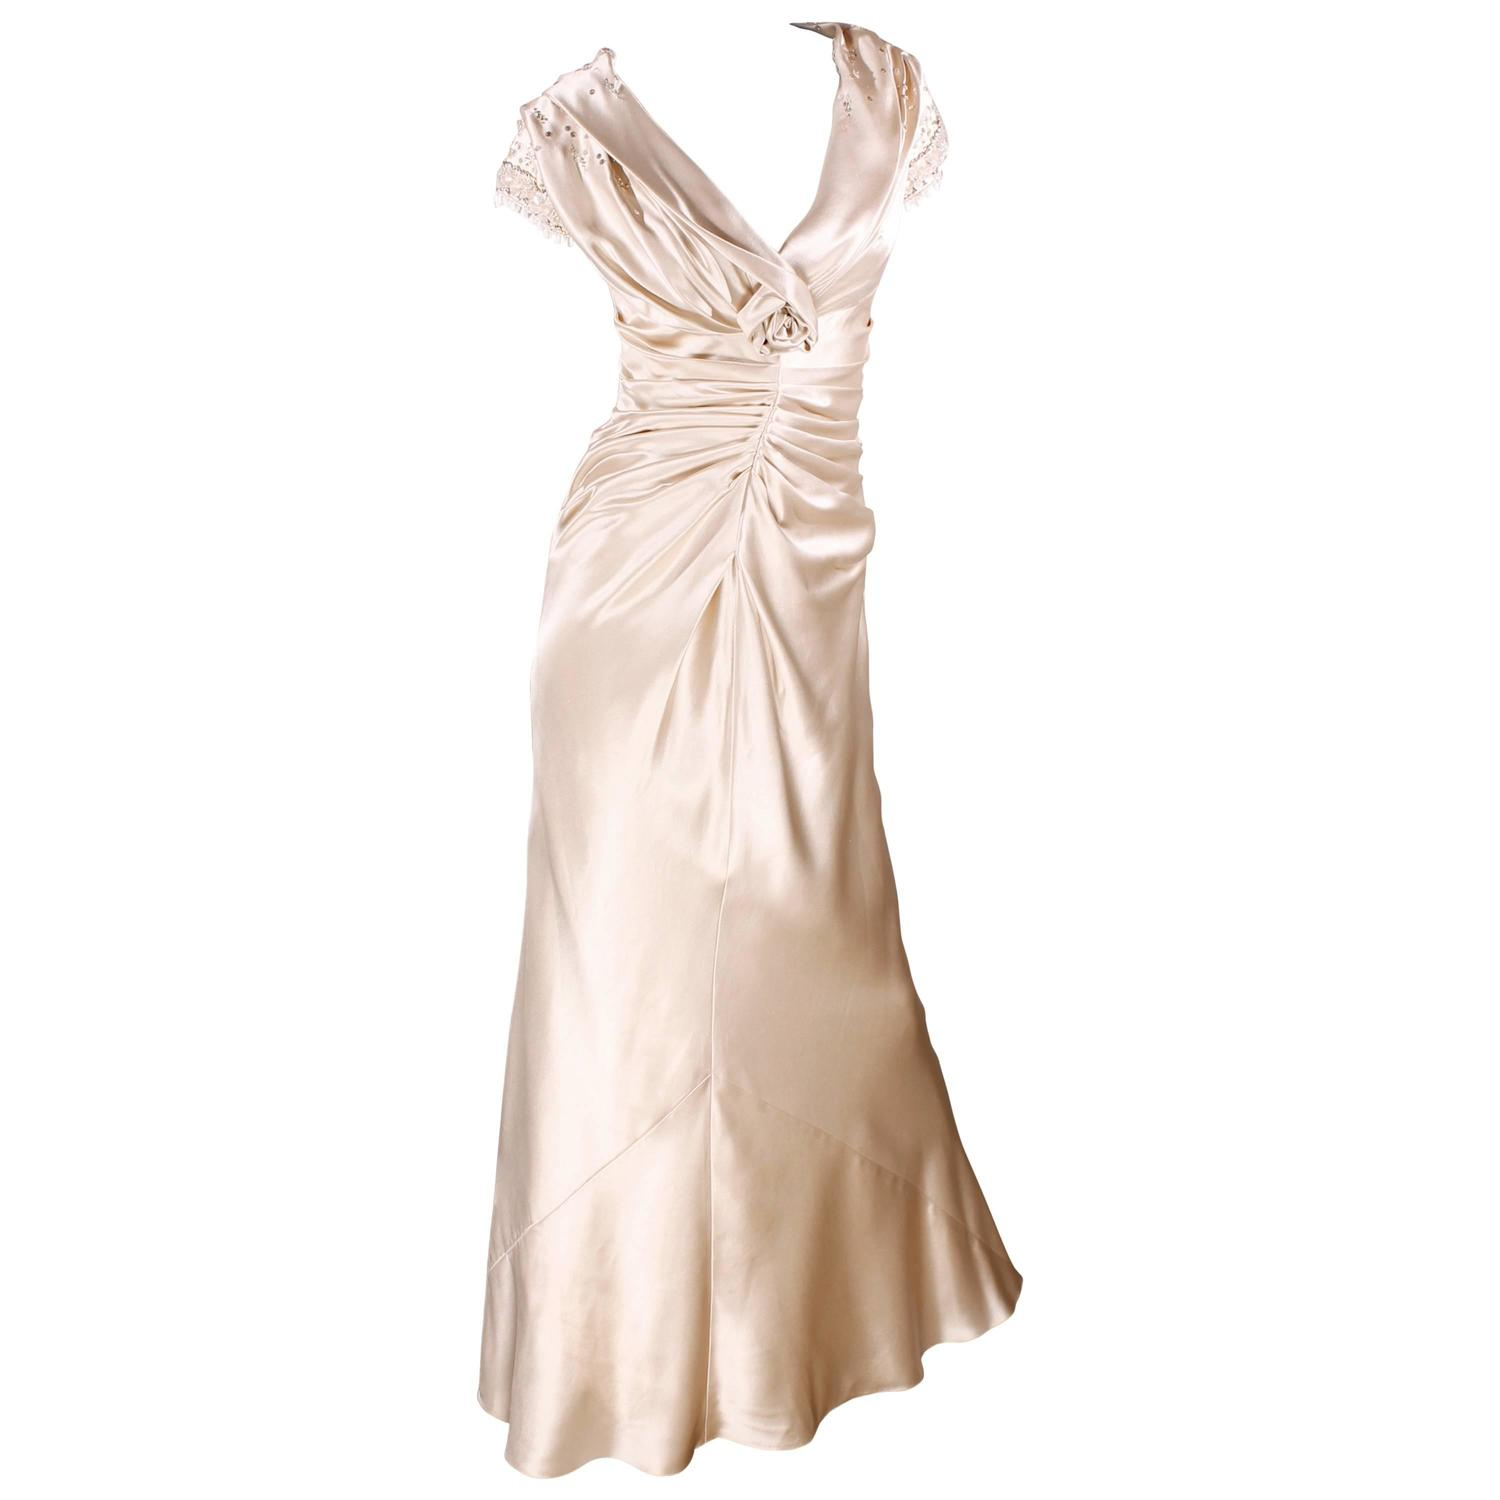 Christian dior champagne colored evening gown at 1stdibs for Dior couture dress price